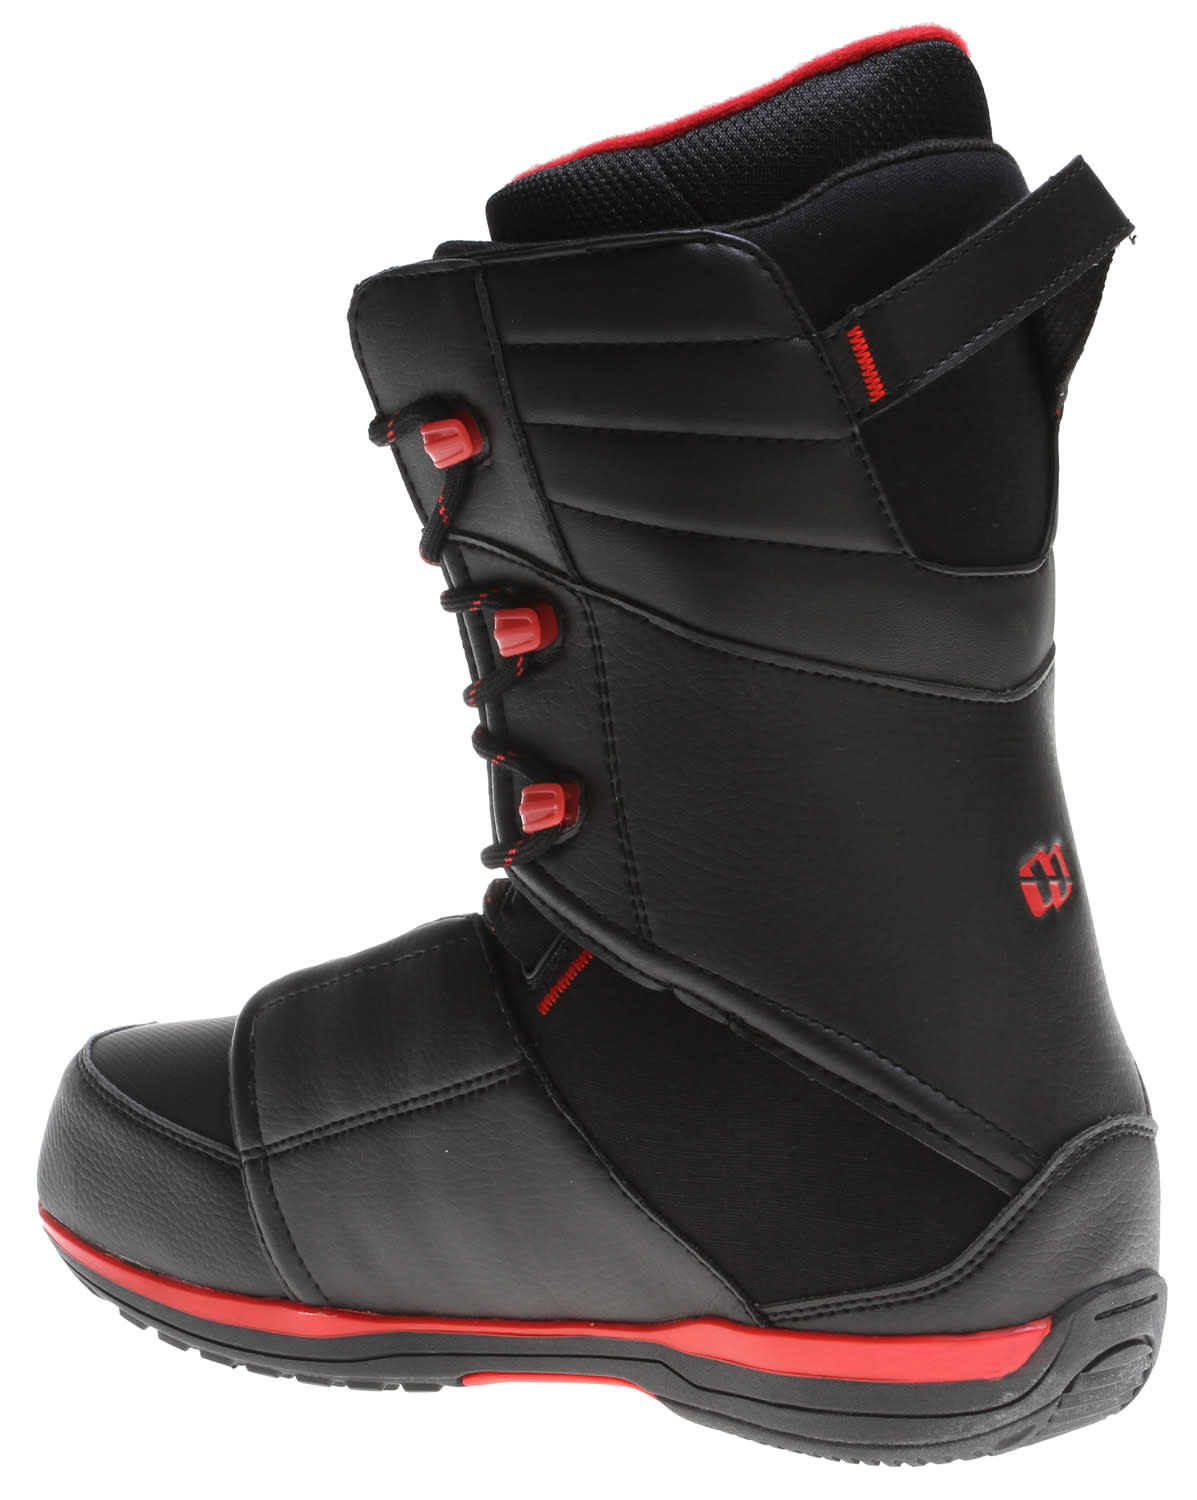 on sale morrow snowboard boots up to 50